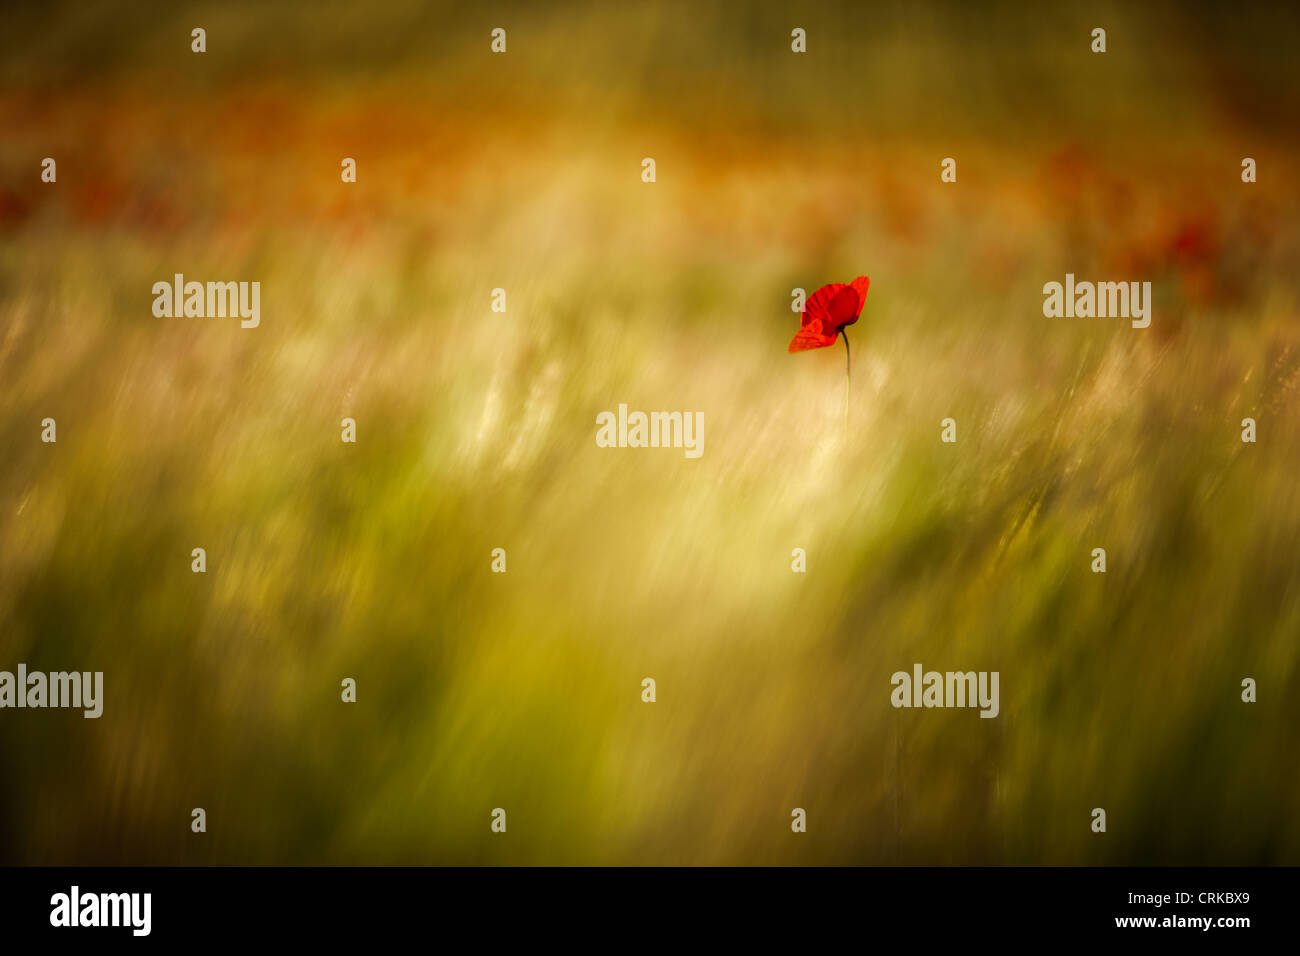 a poppy in a field, nr Norcia, Umbria, Italy Stock Photo